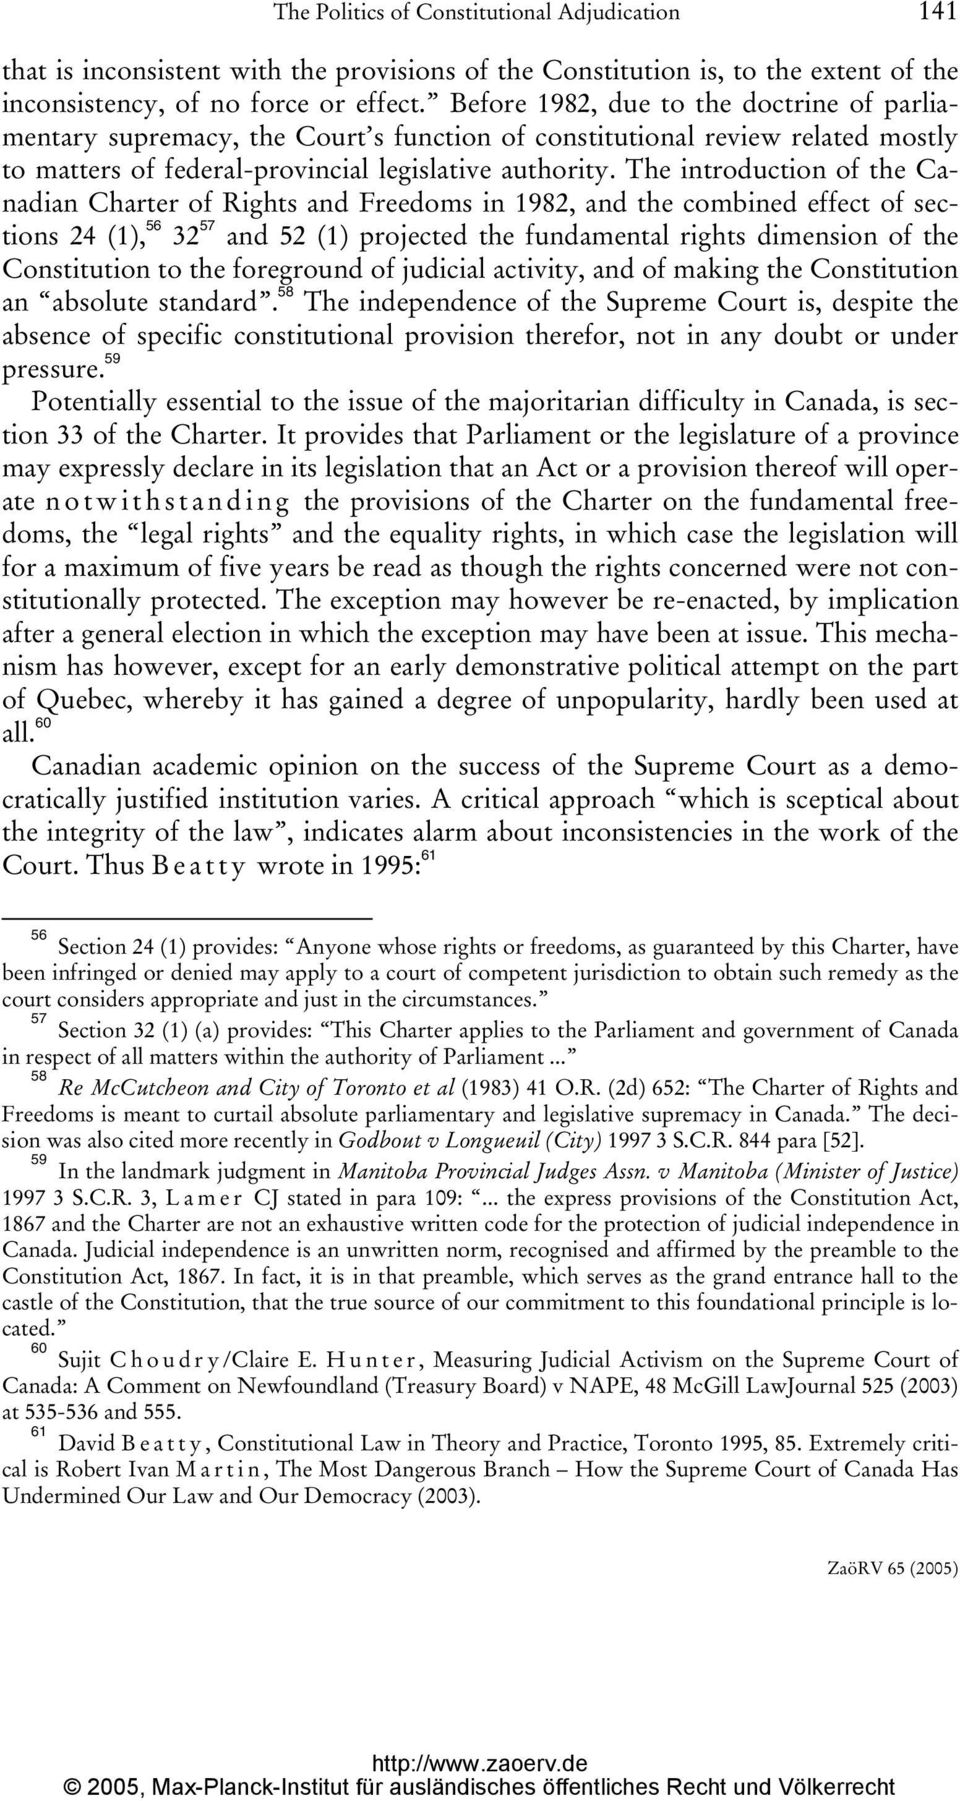 The introduction of the Canadian Charter of Rights and Freedoms in 1982, and the combined effect of sections 24 (1), 56 32 57 and 52 (1) projected the fundamental rights dimension of the Constitution